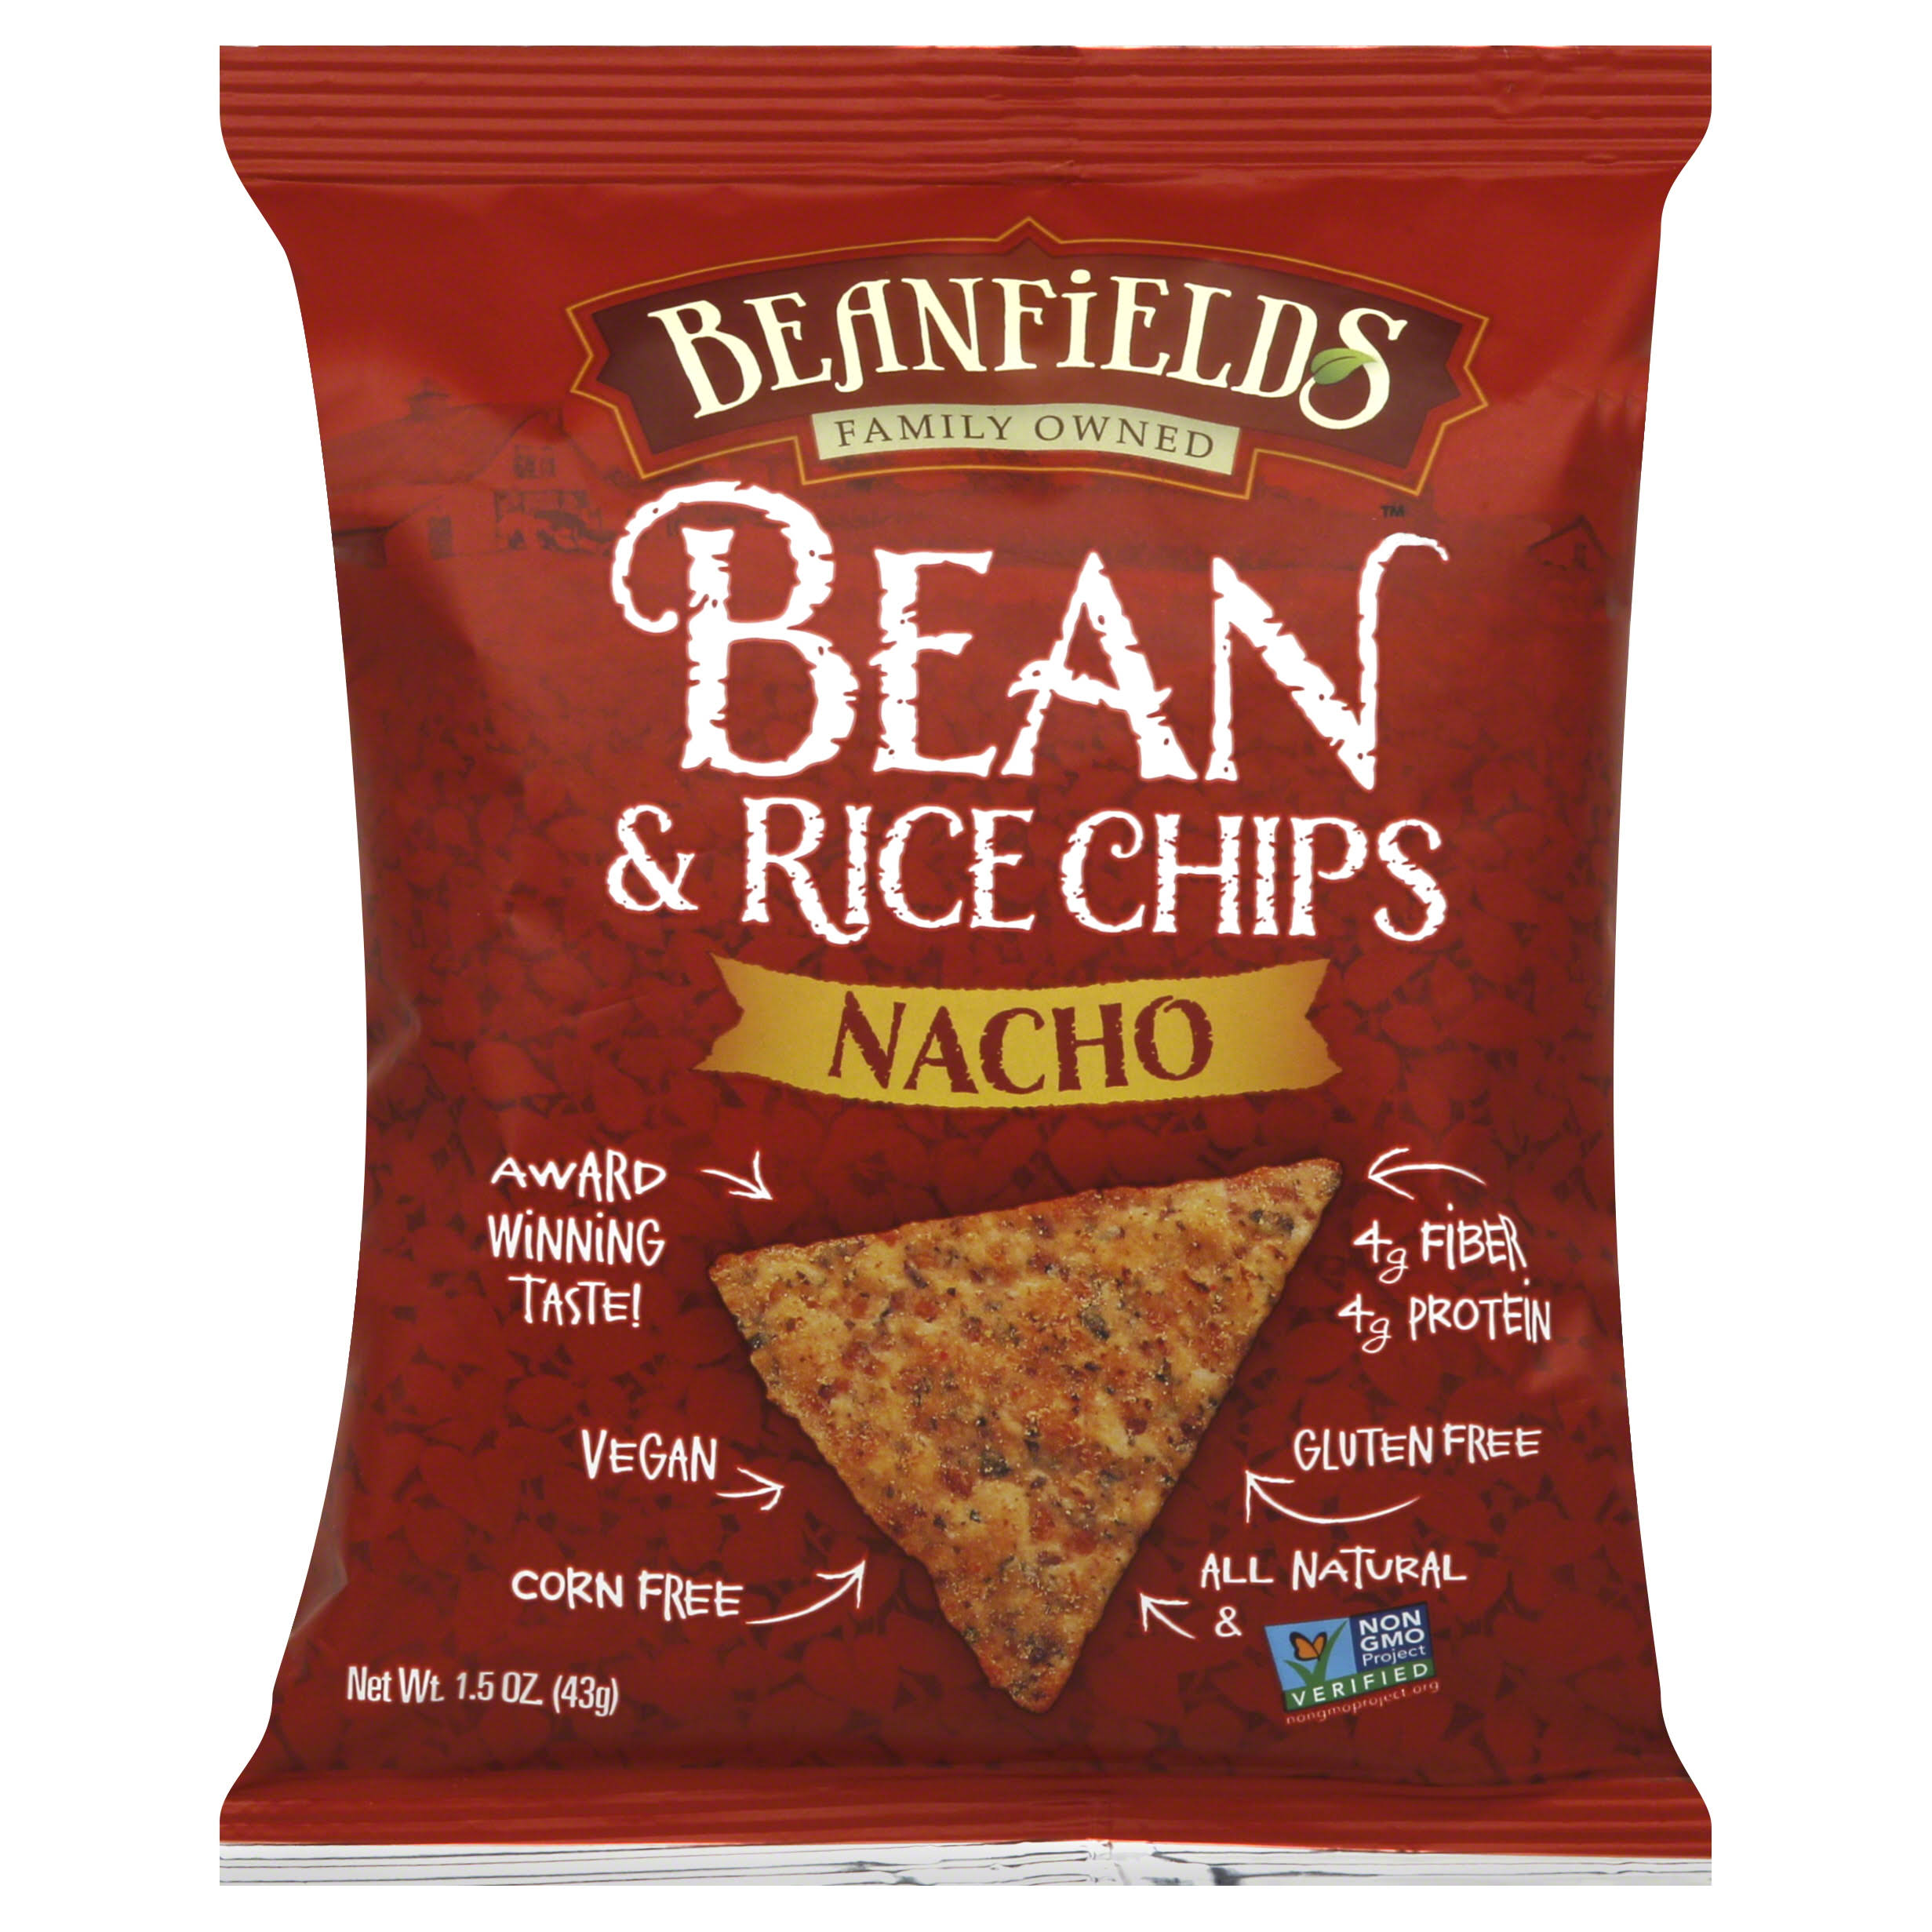 Beanfields Nacho Bean and Rice Chips - 1.5oz